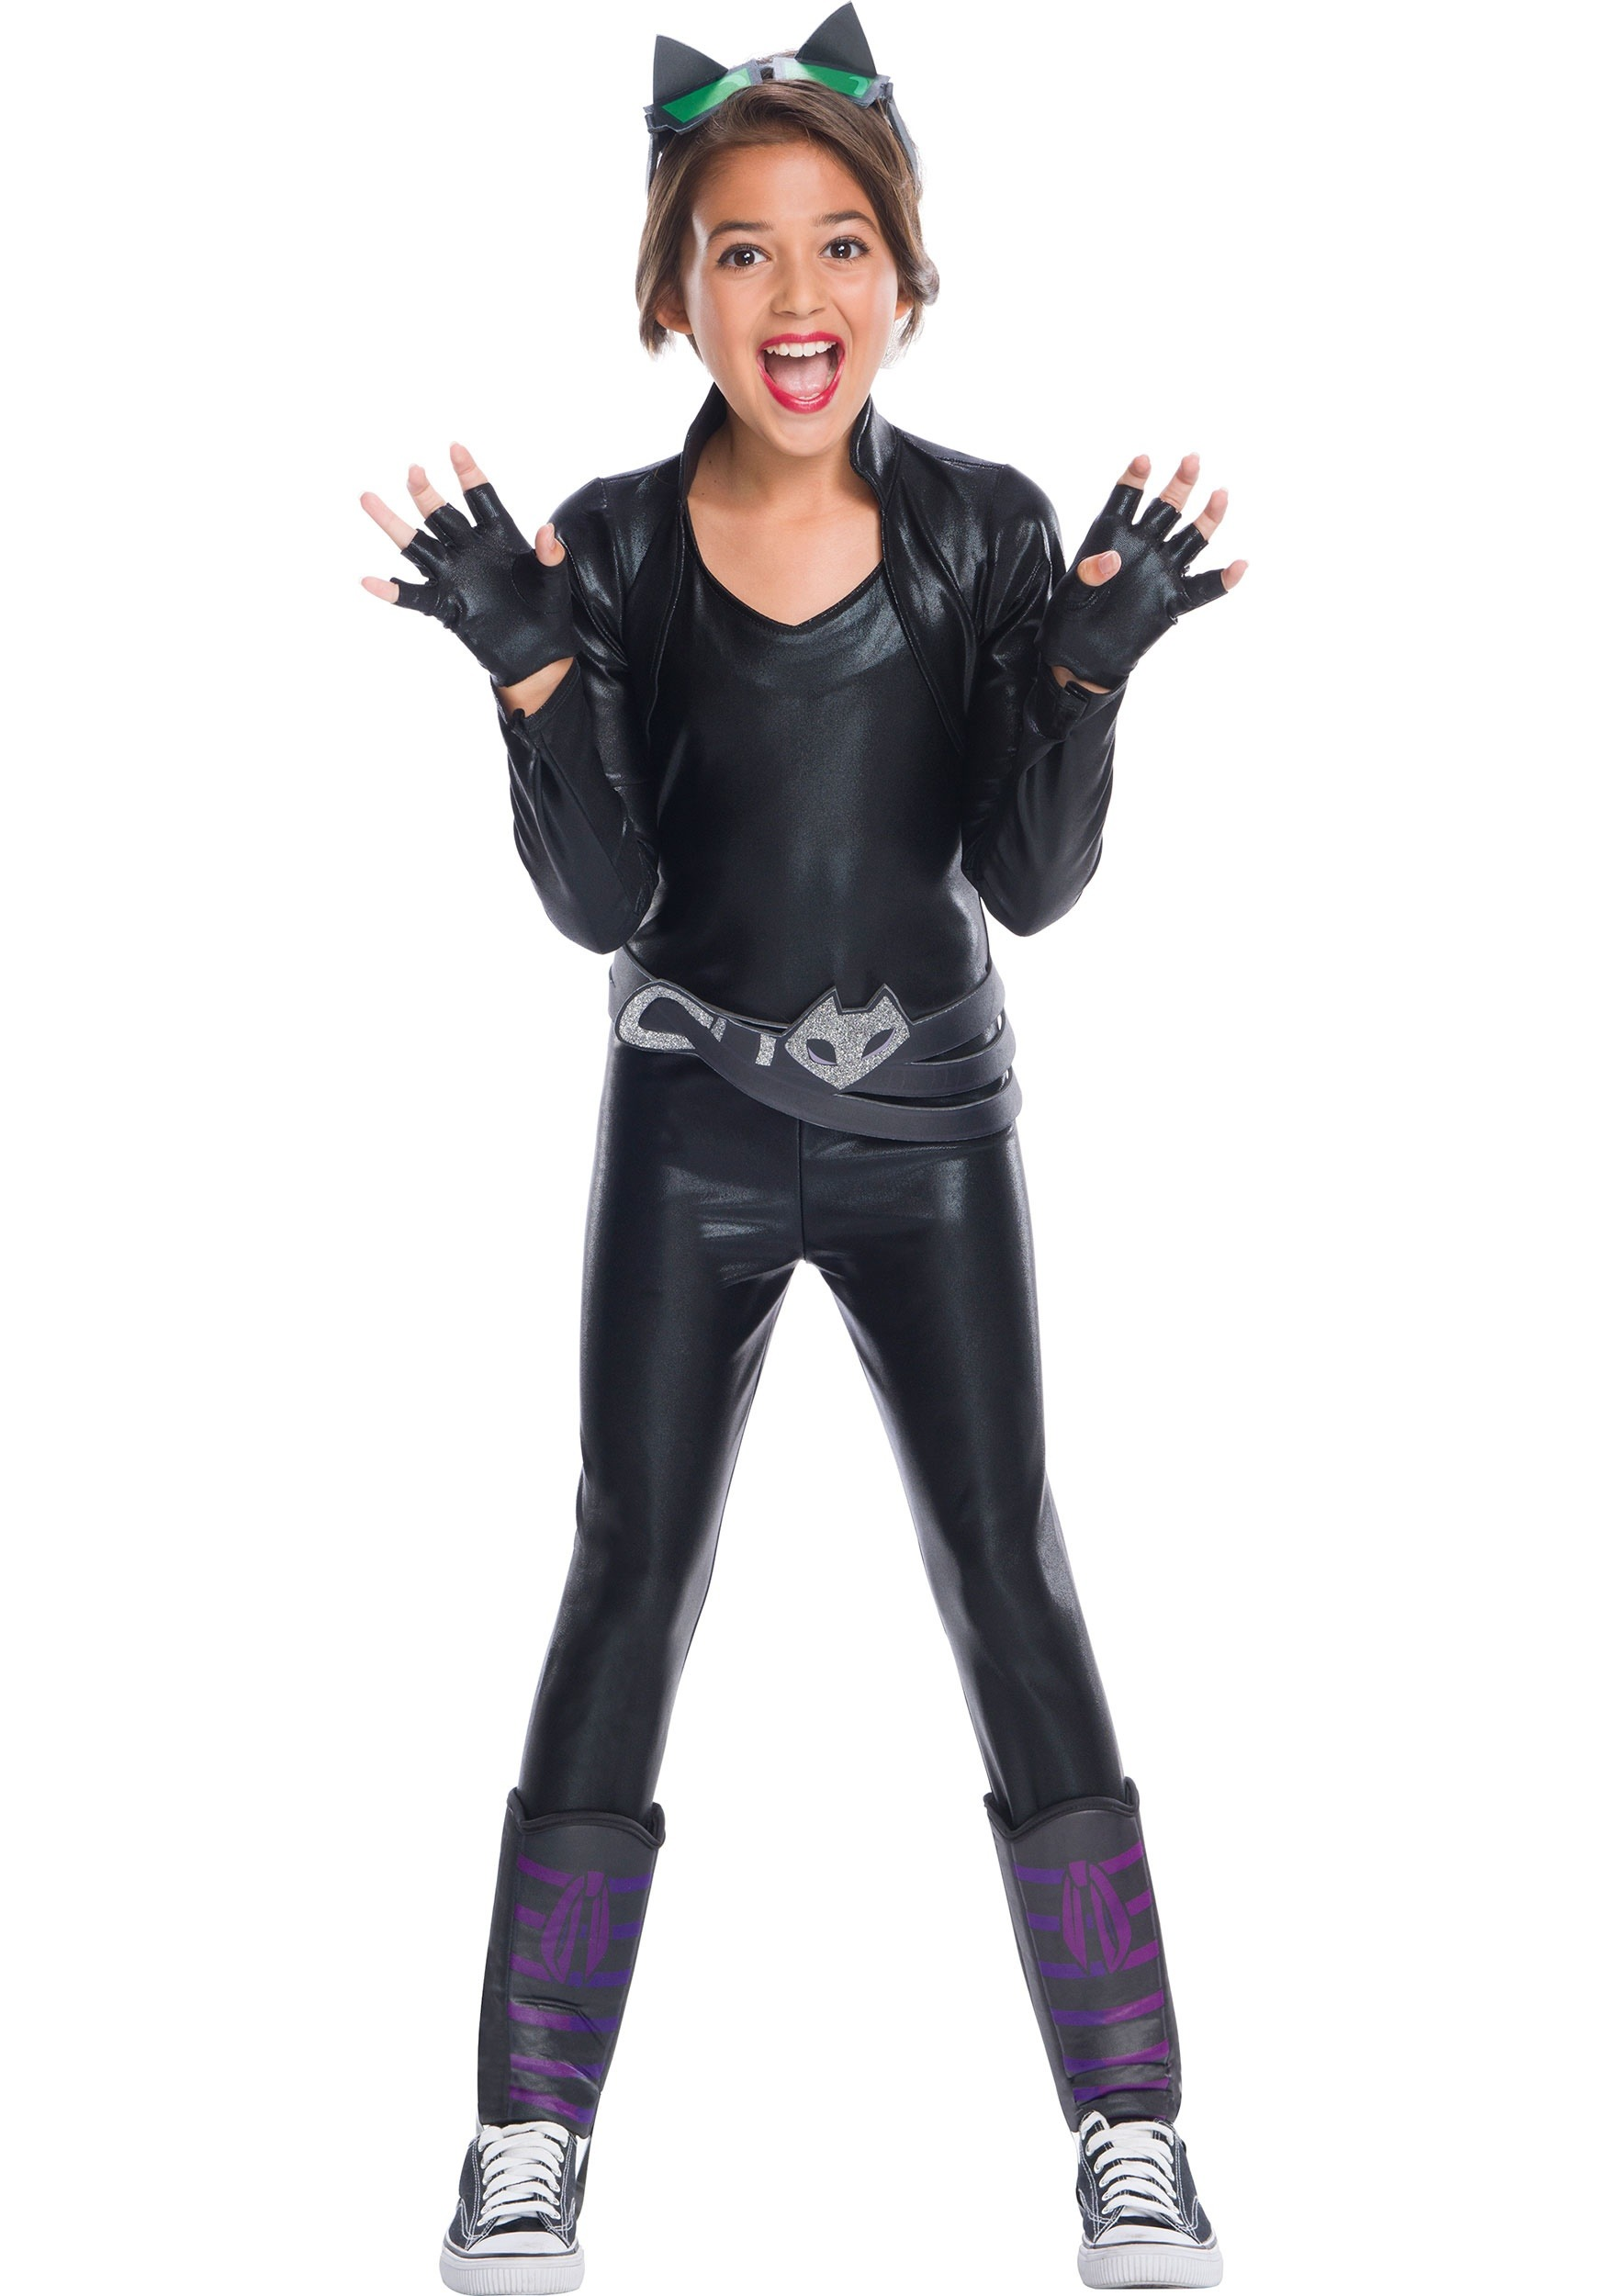 DC Superhero Girls Catwoman Costume  sc 1 st  Halloween Costumes AU & DC Superhero Girls Catwoman Costume for Girls